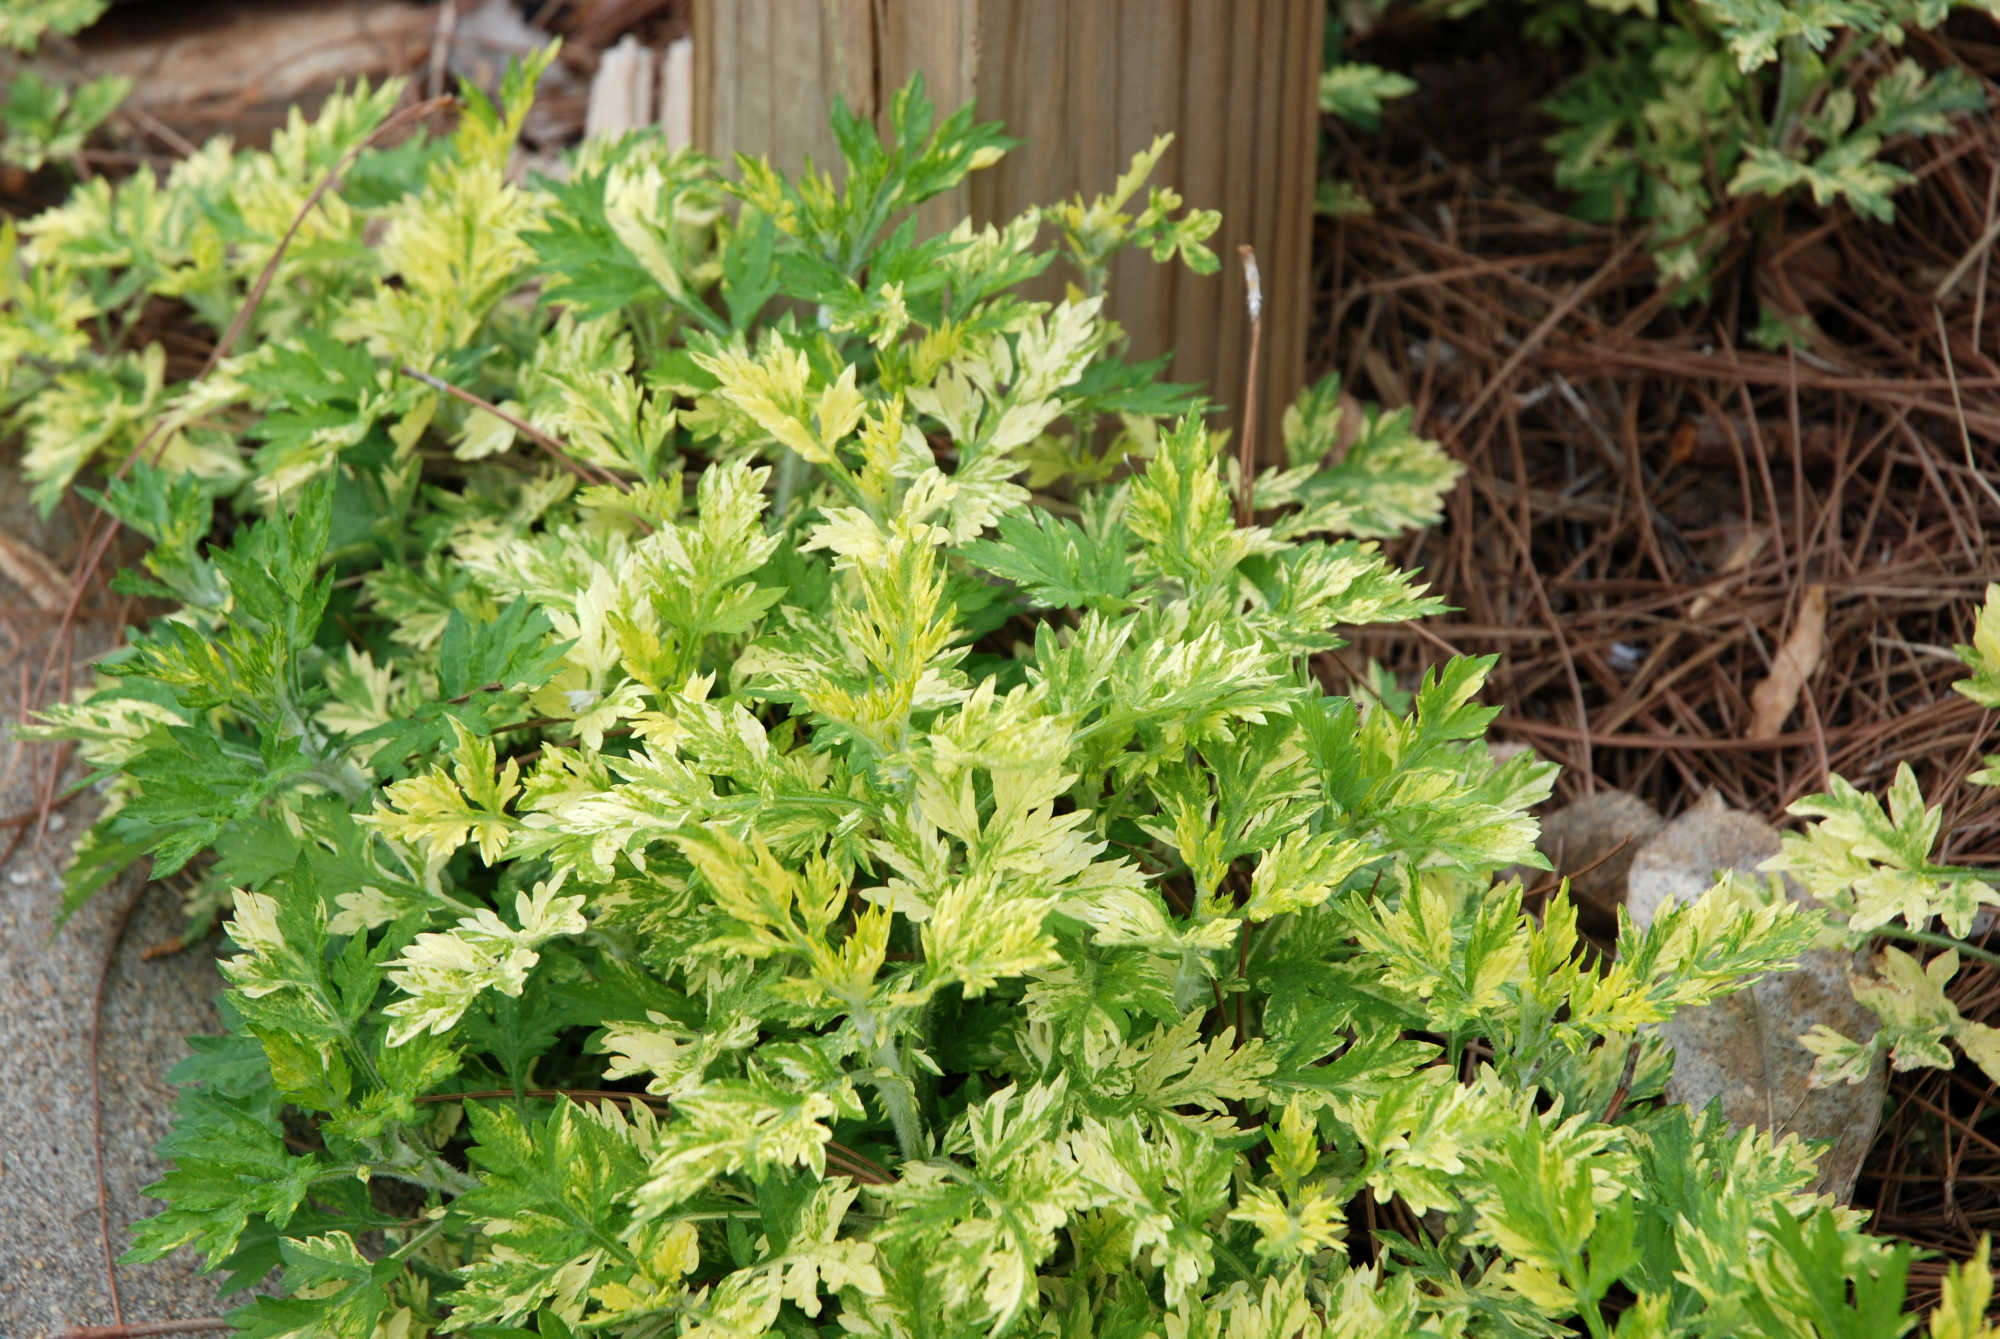 Invasive And Aggressive Plants: Don't Sell Them, Even If They're Pretty, Armitage Says